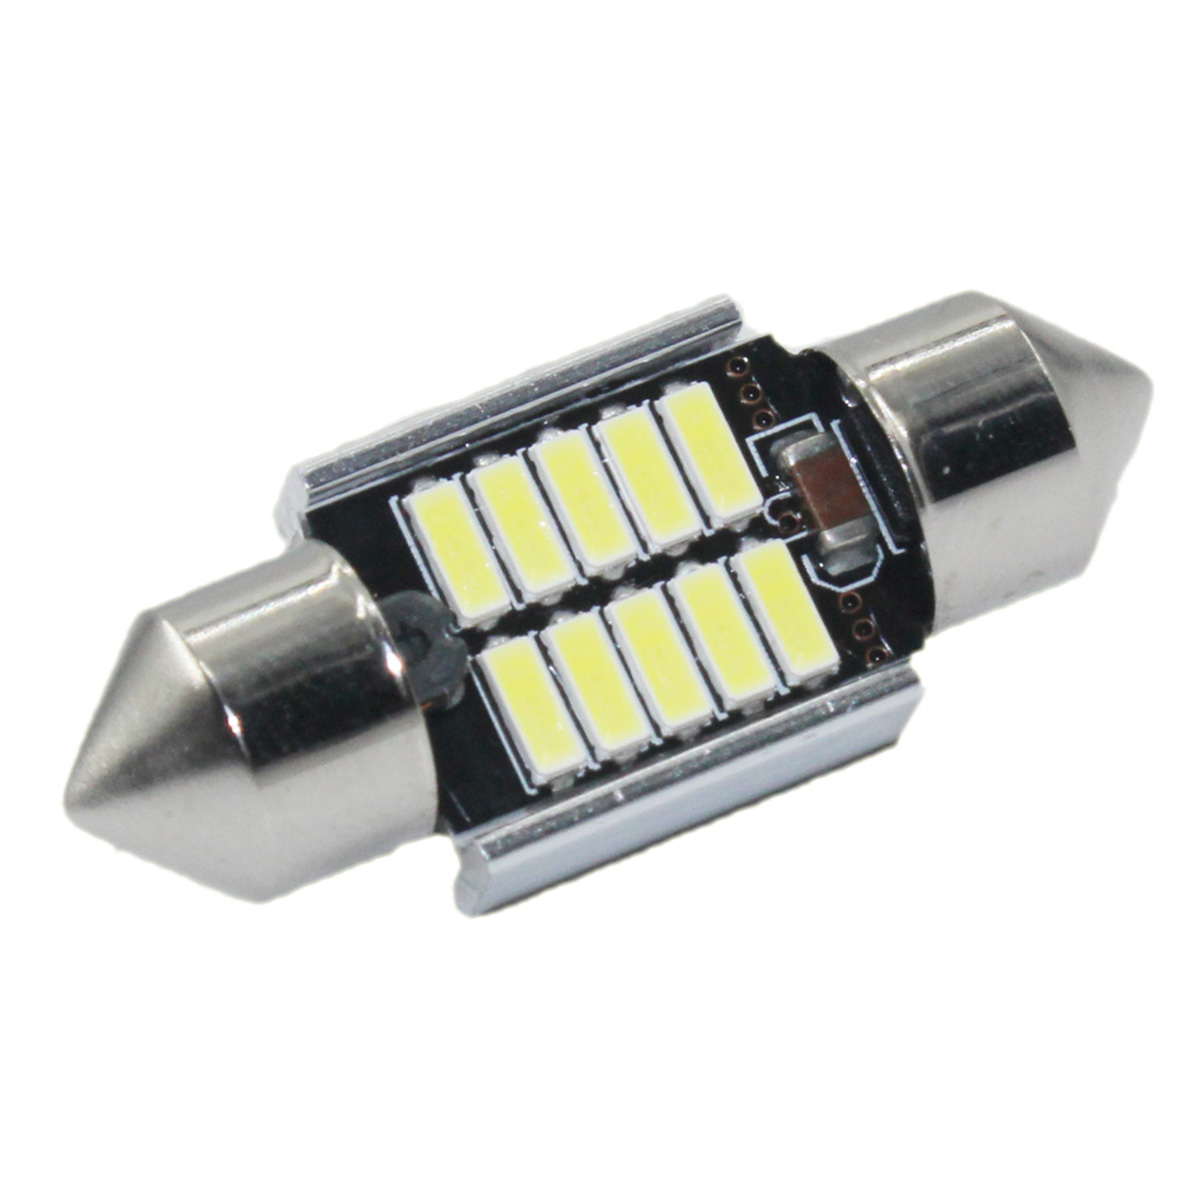 2pcs High Quality 31mm 36mm 39mm <font><b>42mm</b></font> 5730 SMD <font><b>LED</b></font> CANBUS Car White Light Auto Interior Dome Lamps Reading <font><b>Bulb</b></font> Warm White image